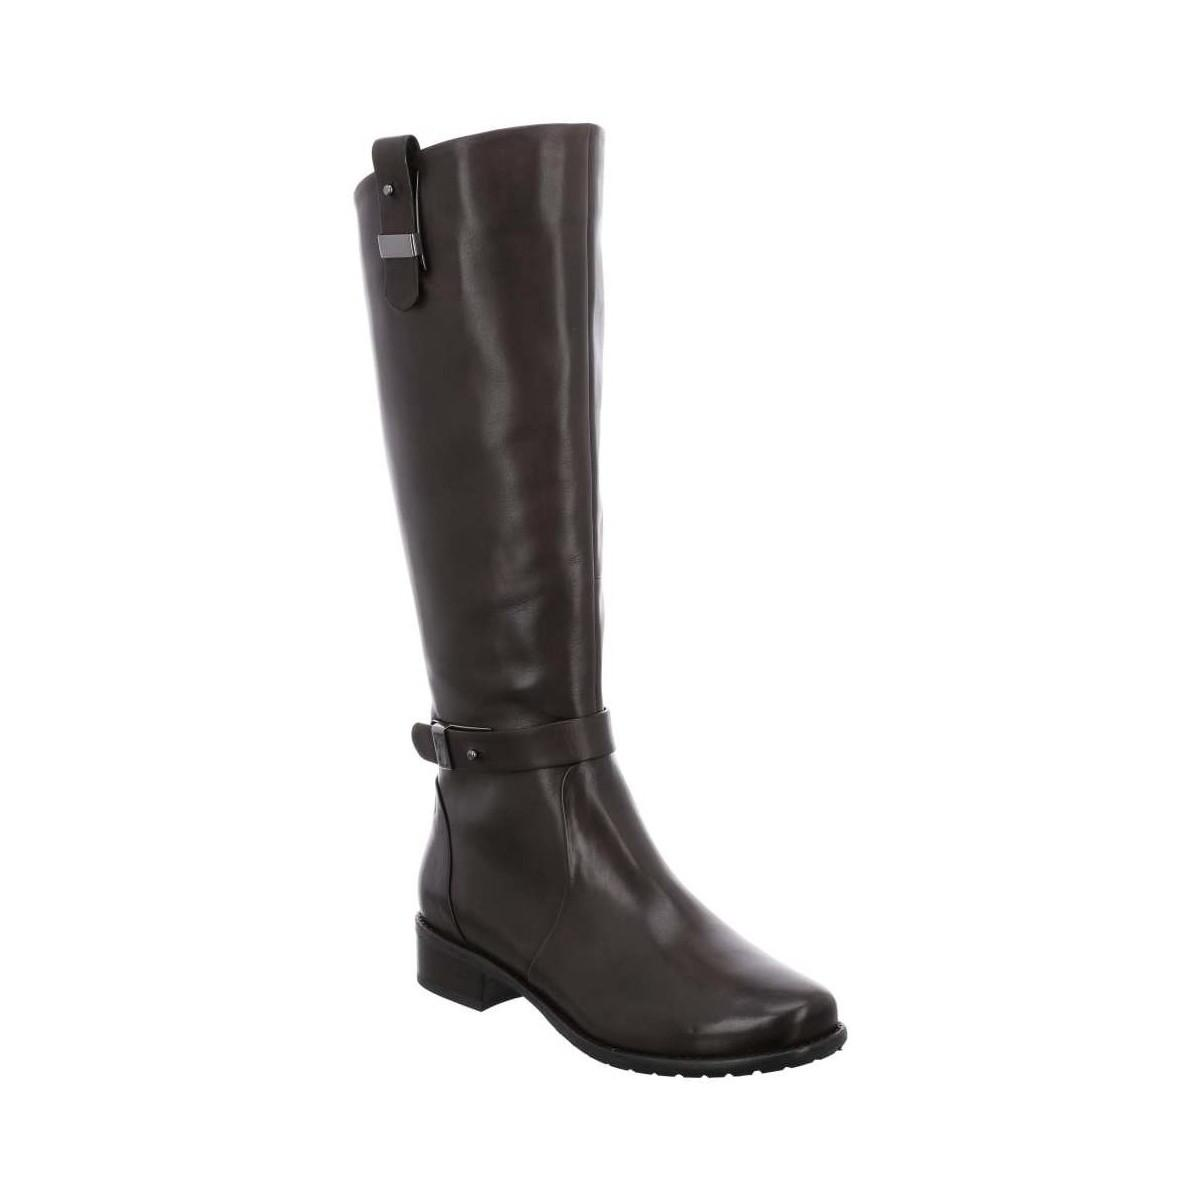 Enjoy For Sale Store Sale Online Gerry Weber Diane 20 women's High Boots in Z3DCAnR2s